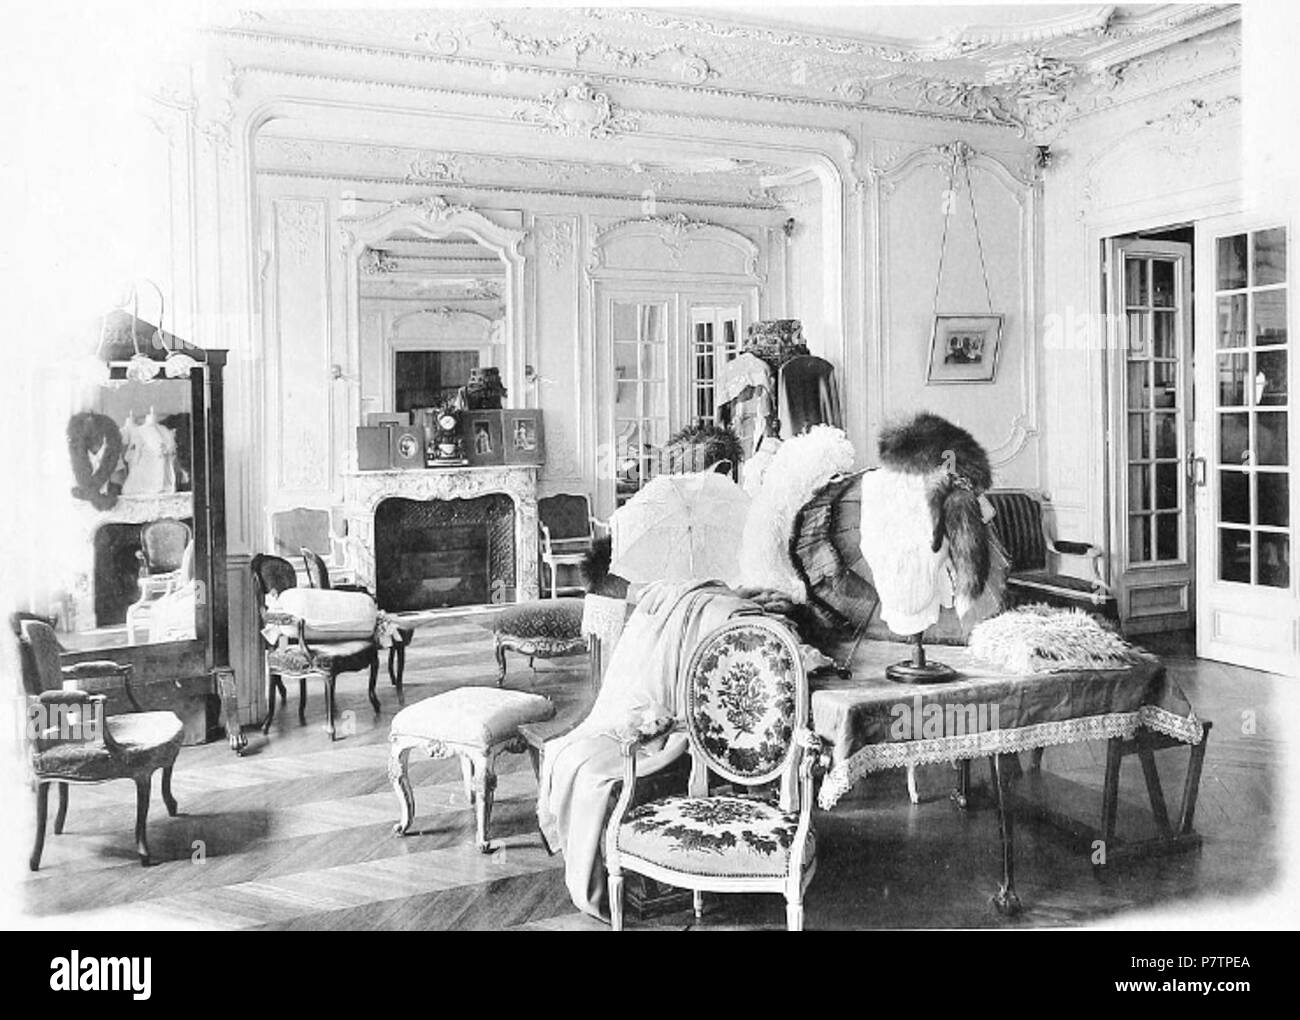 Couture Room Black And White Stock Photos Images Alamy